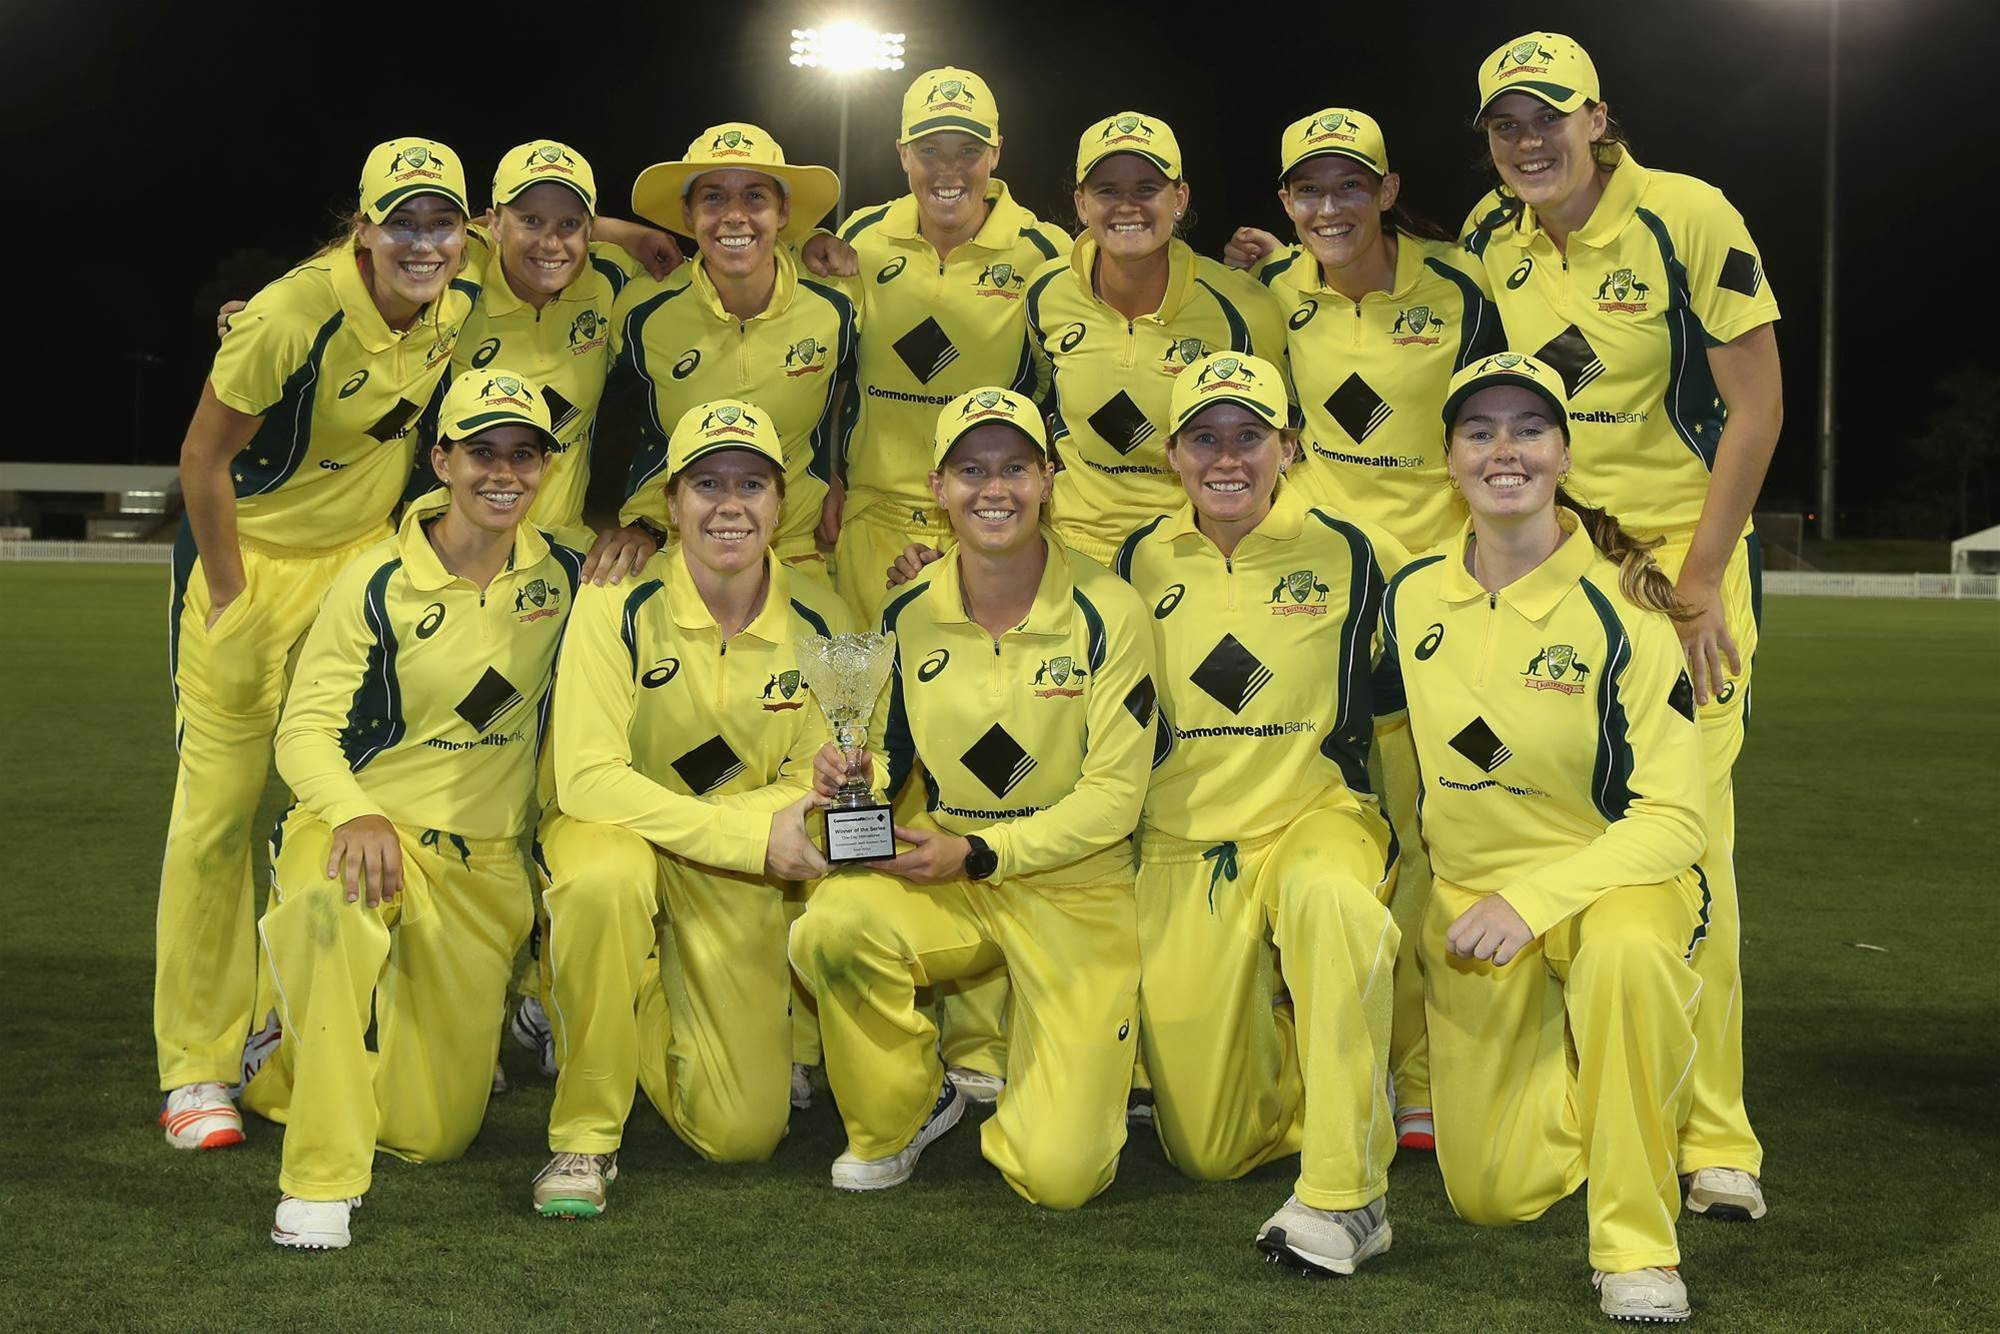 Southern Stars are no more as Cricket Australia drops the name